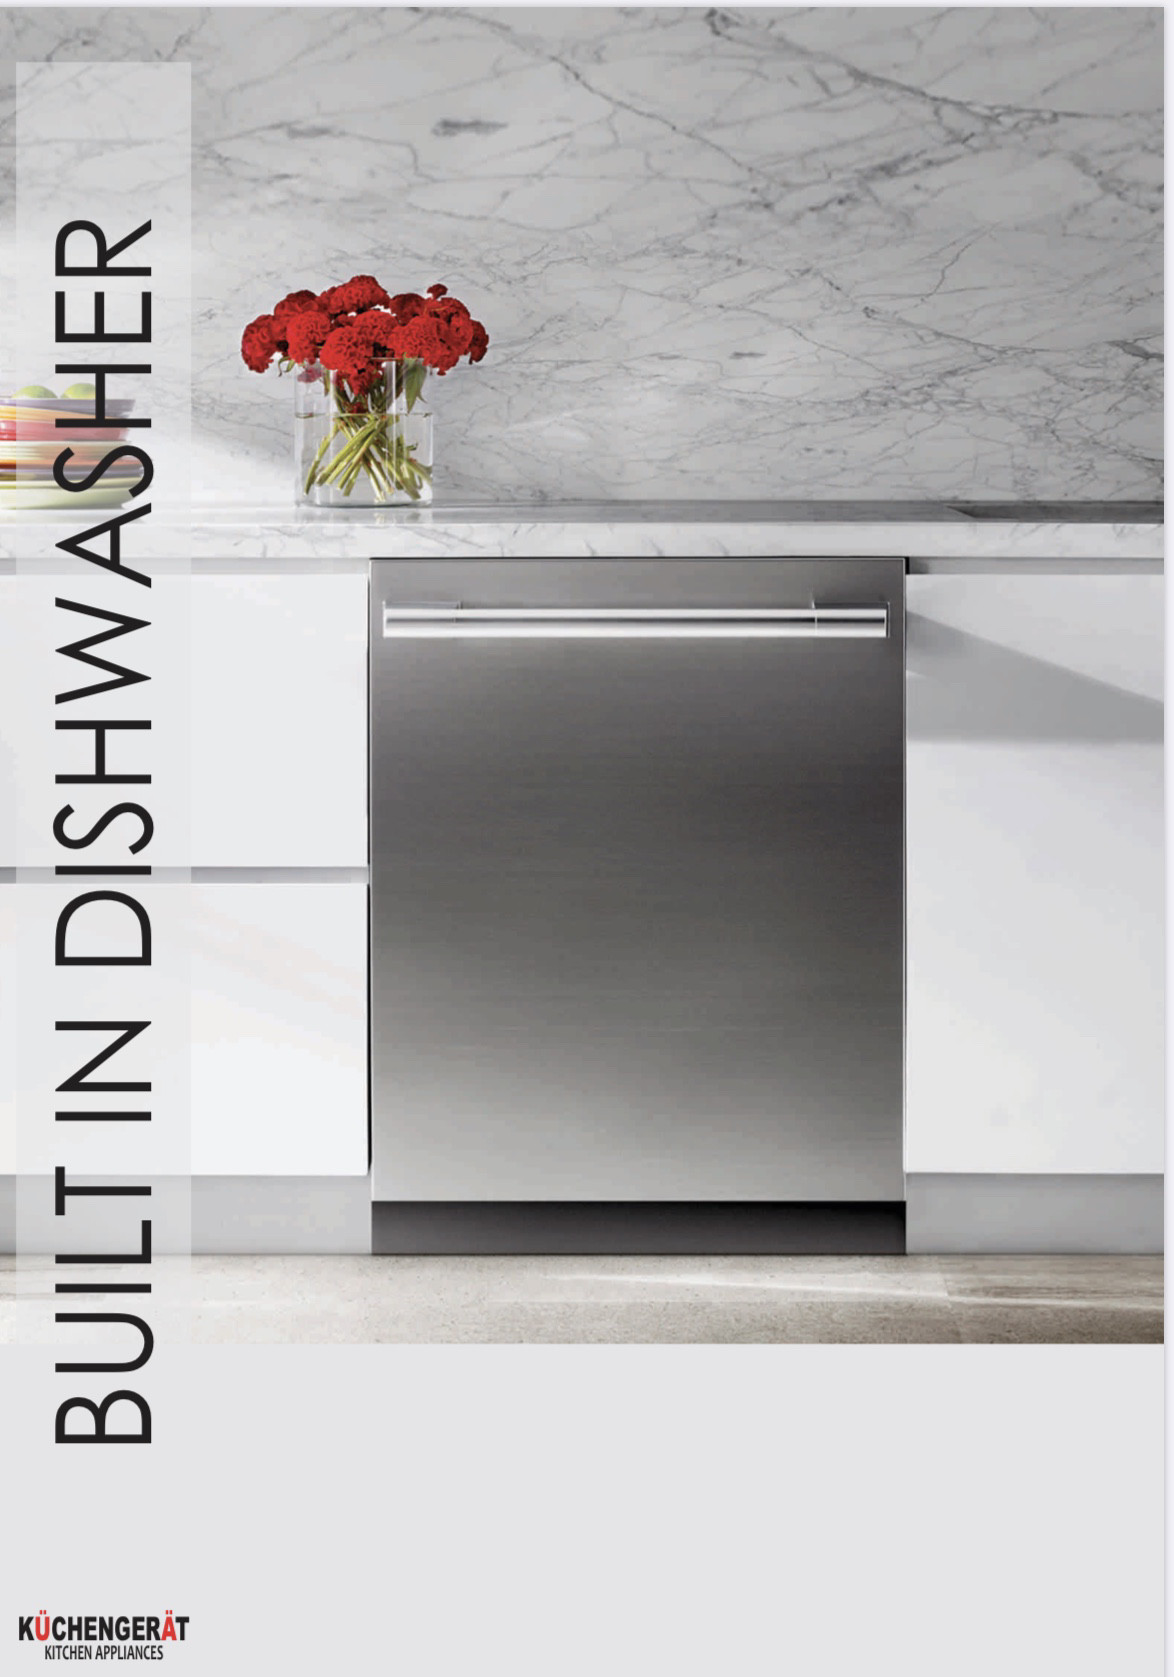 Picture for category Dishwashing Appliances